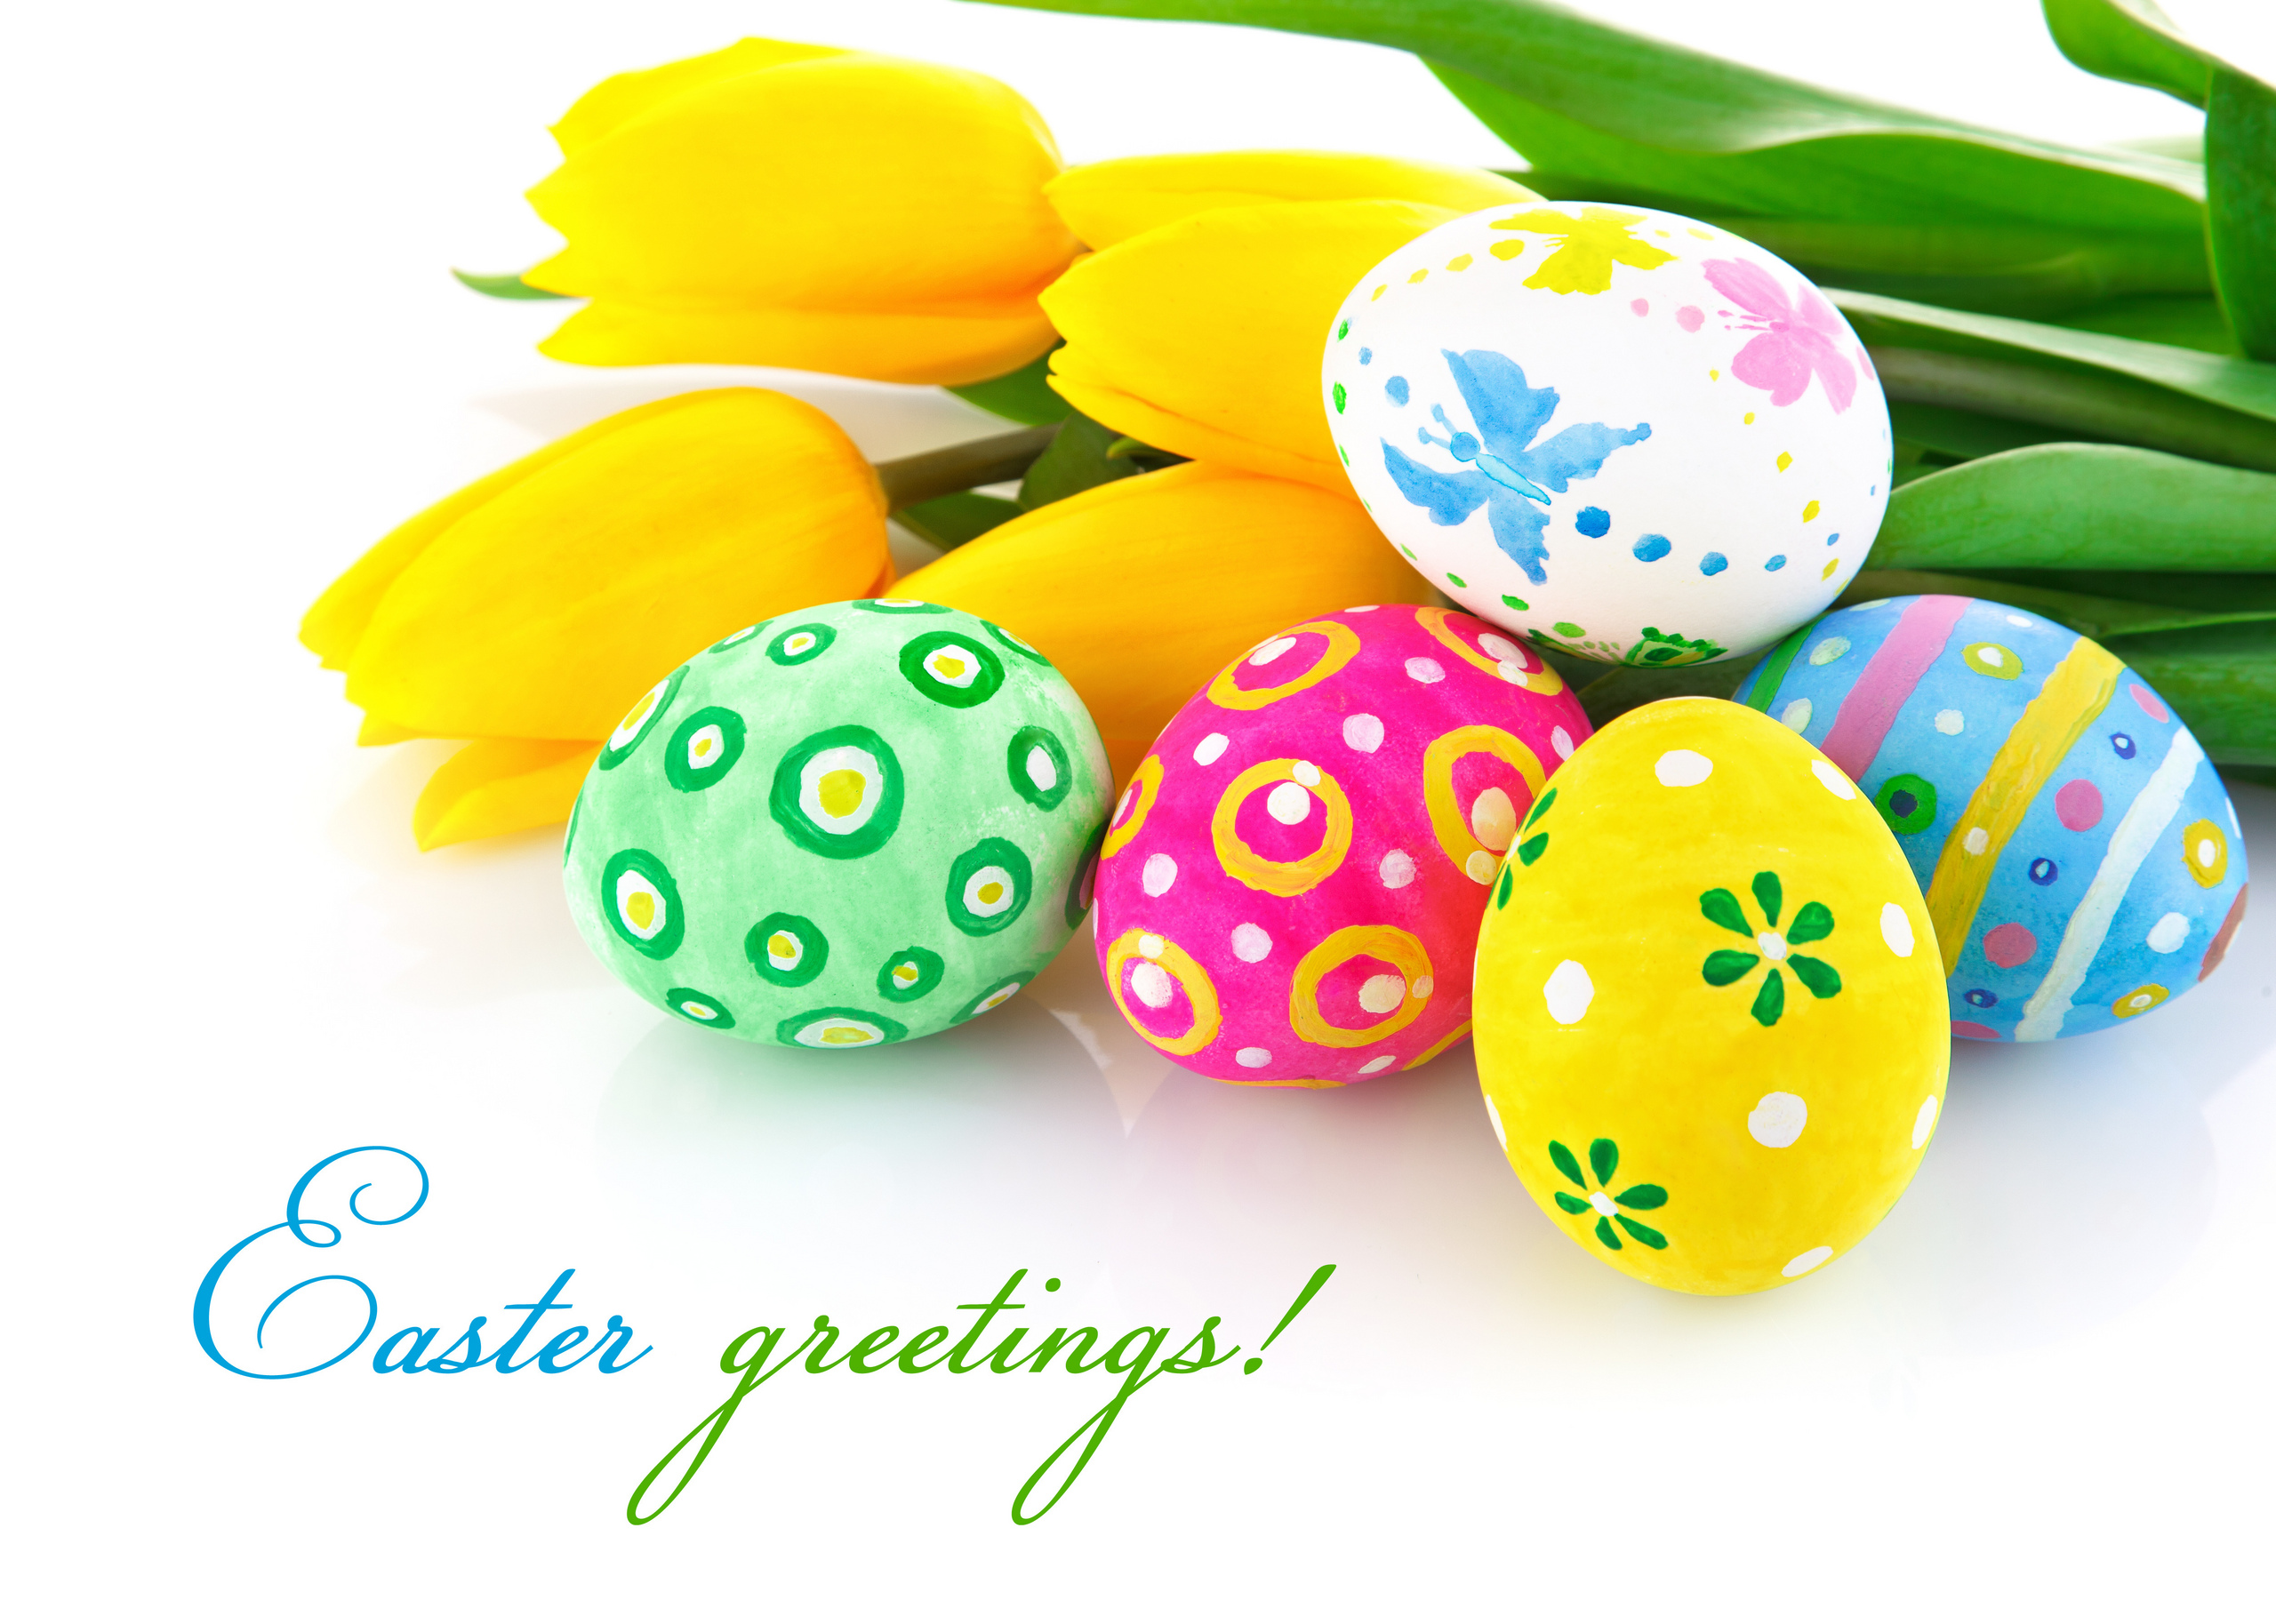 Happy Easter Wishes for Family